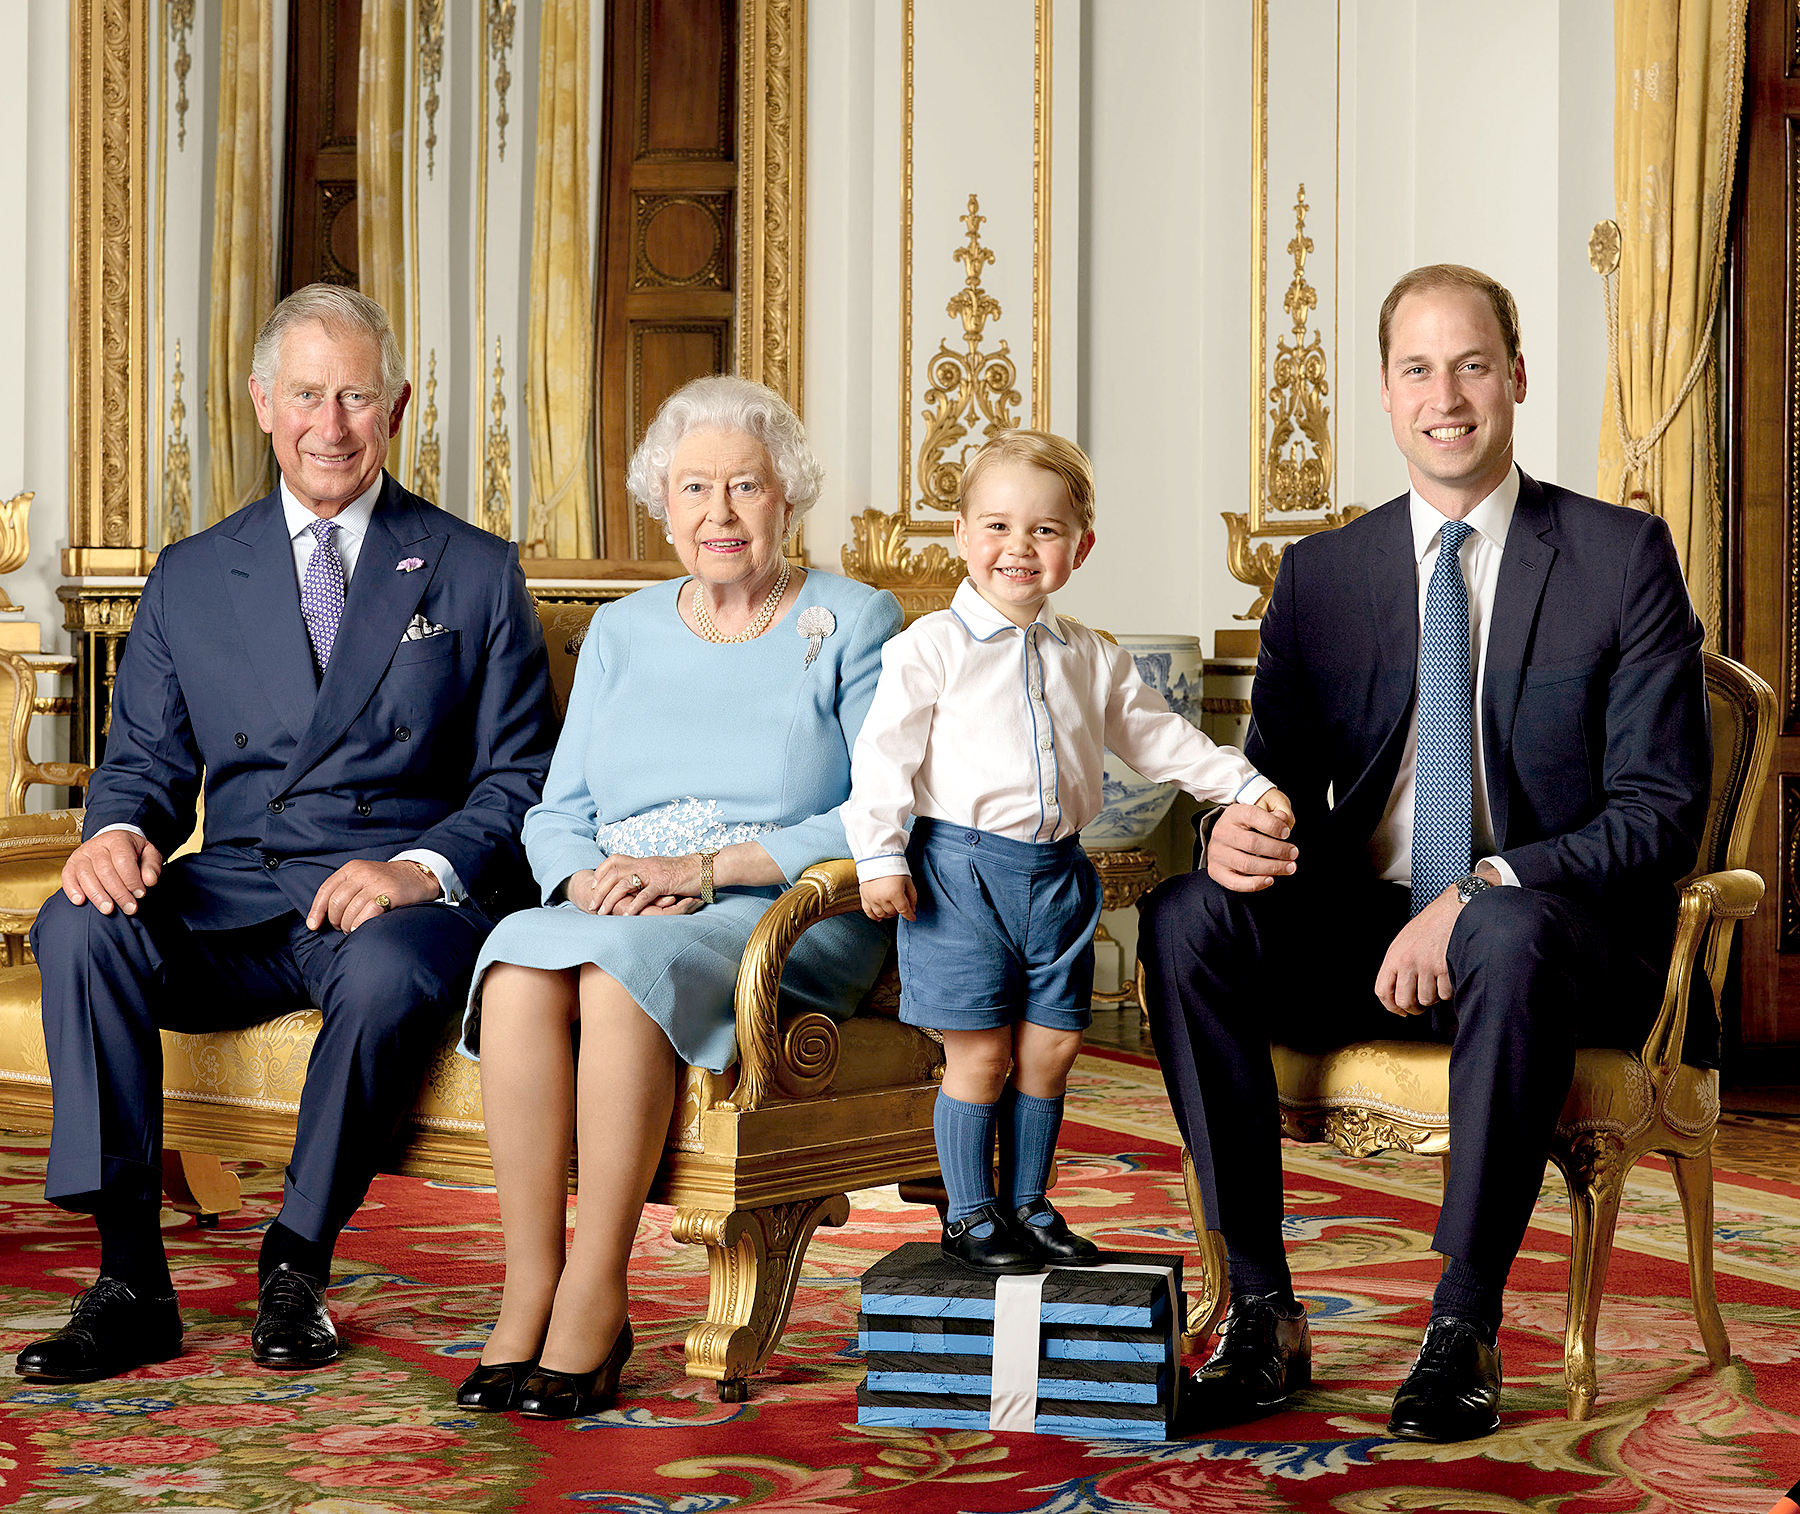 Prince George stands on foam blocks during a Royal Mail photoshoot for a stamp sheet to mark the 90th birthday of Queen Elizabeth II.